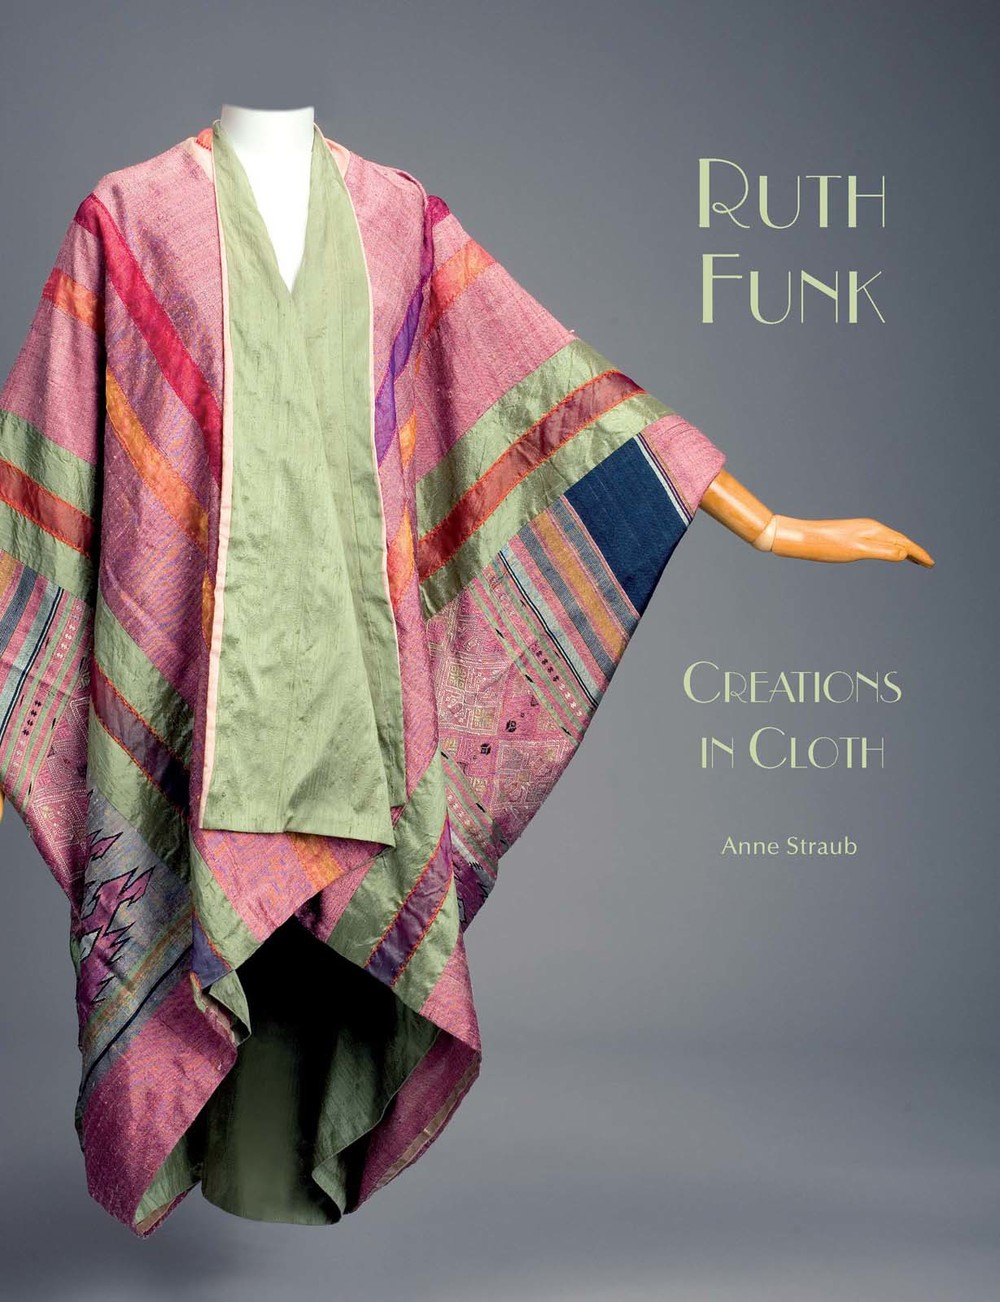 Orn33_1_RuthFunk_Cover.jpg